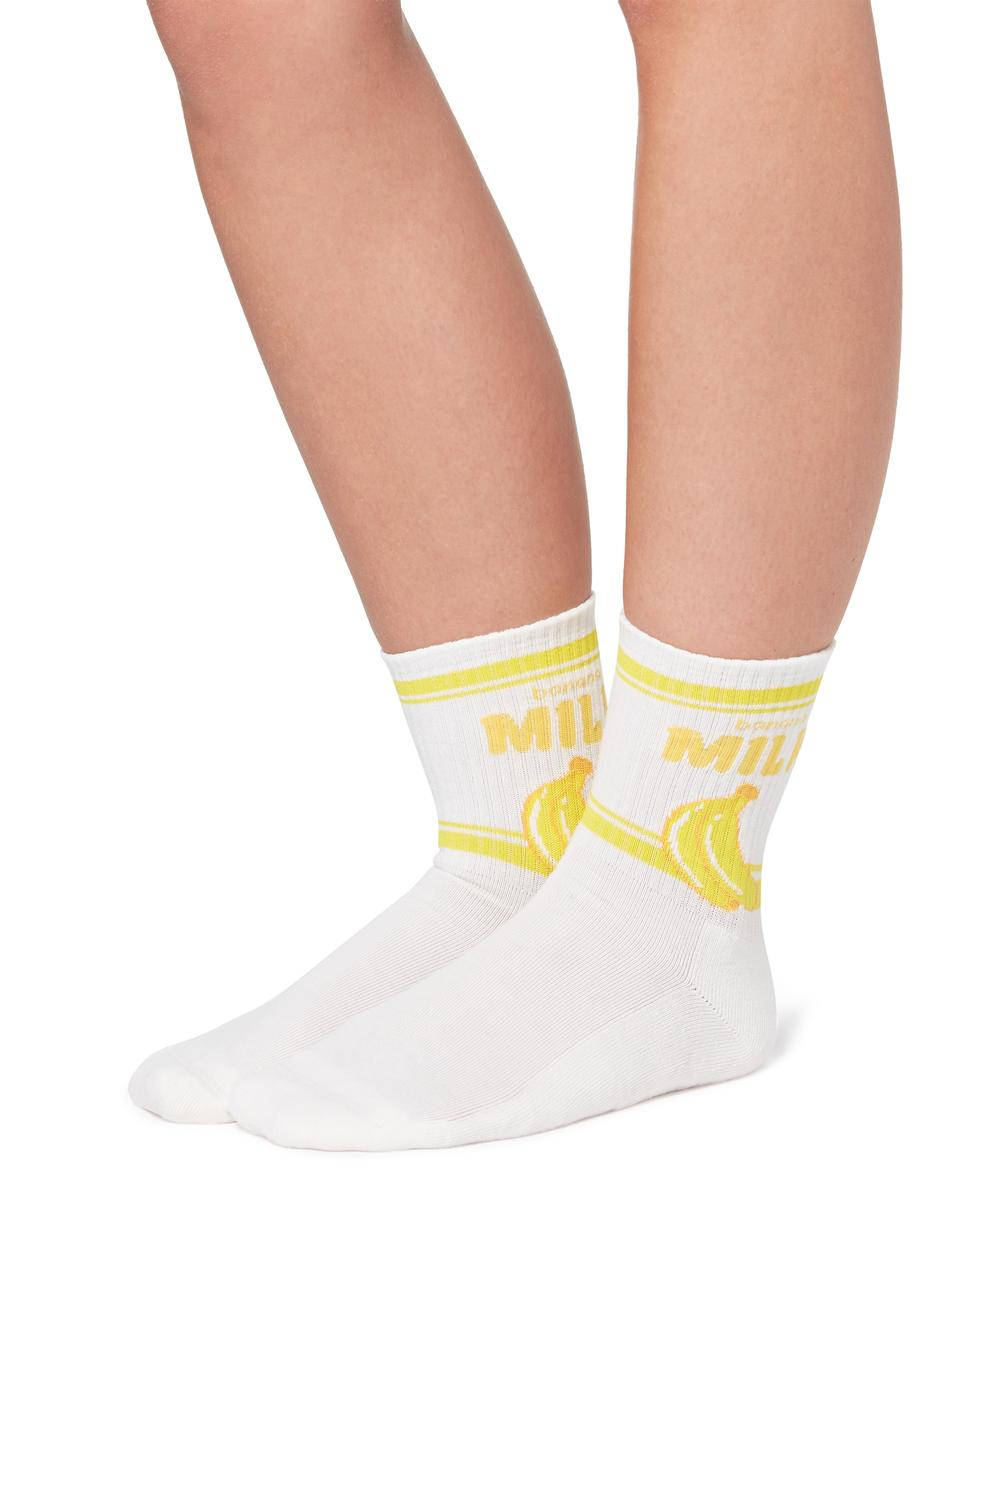 90s Fancy Sports Cotton Crew Socks